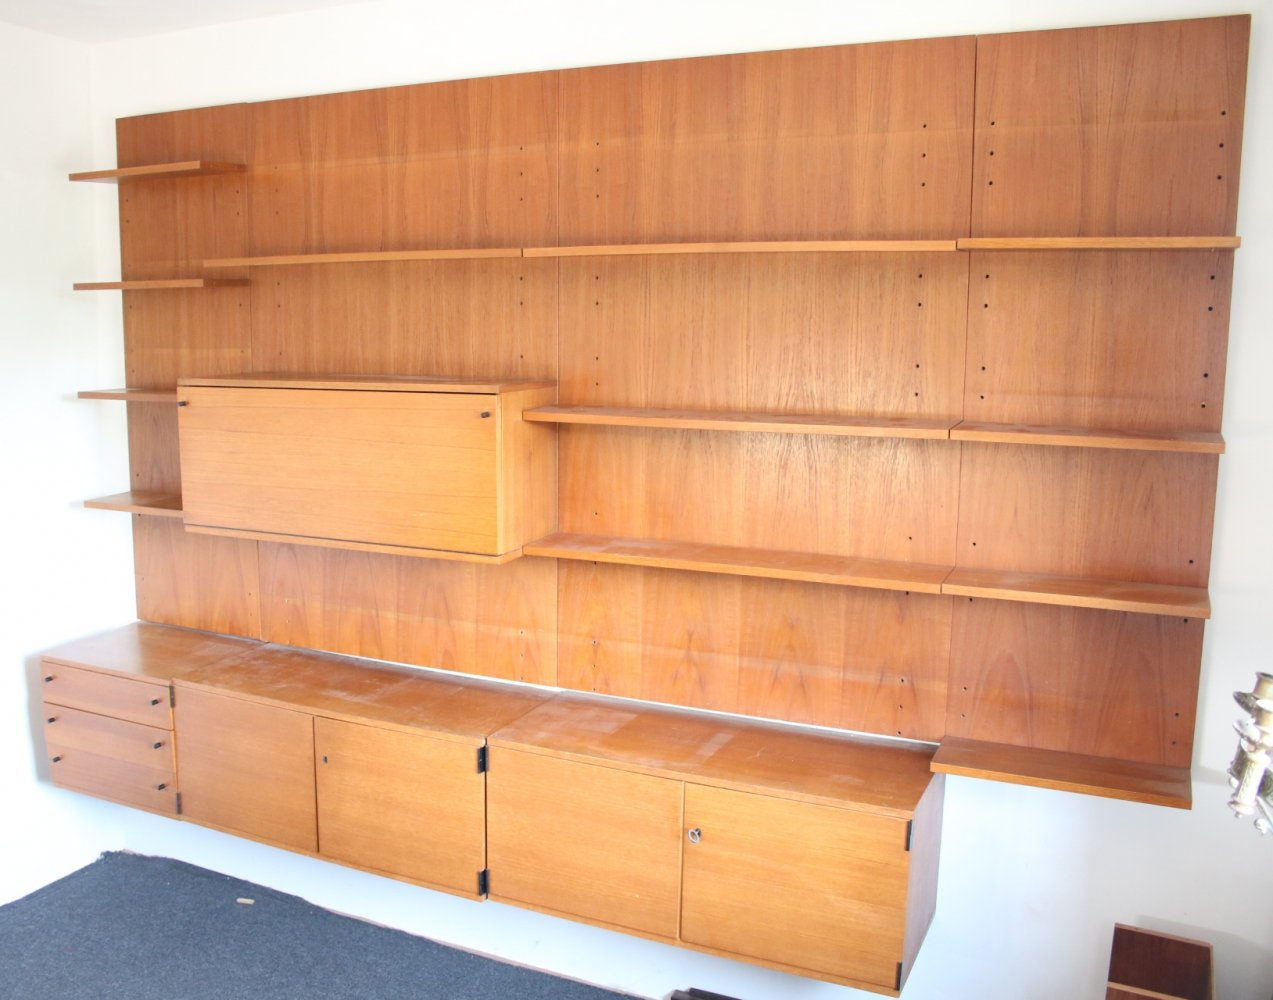 Wall unit by Günter Renkel for Rego, 1960s